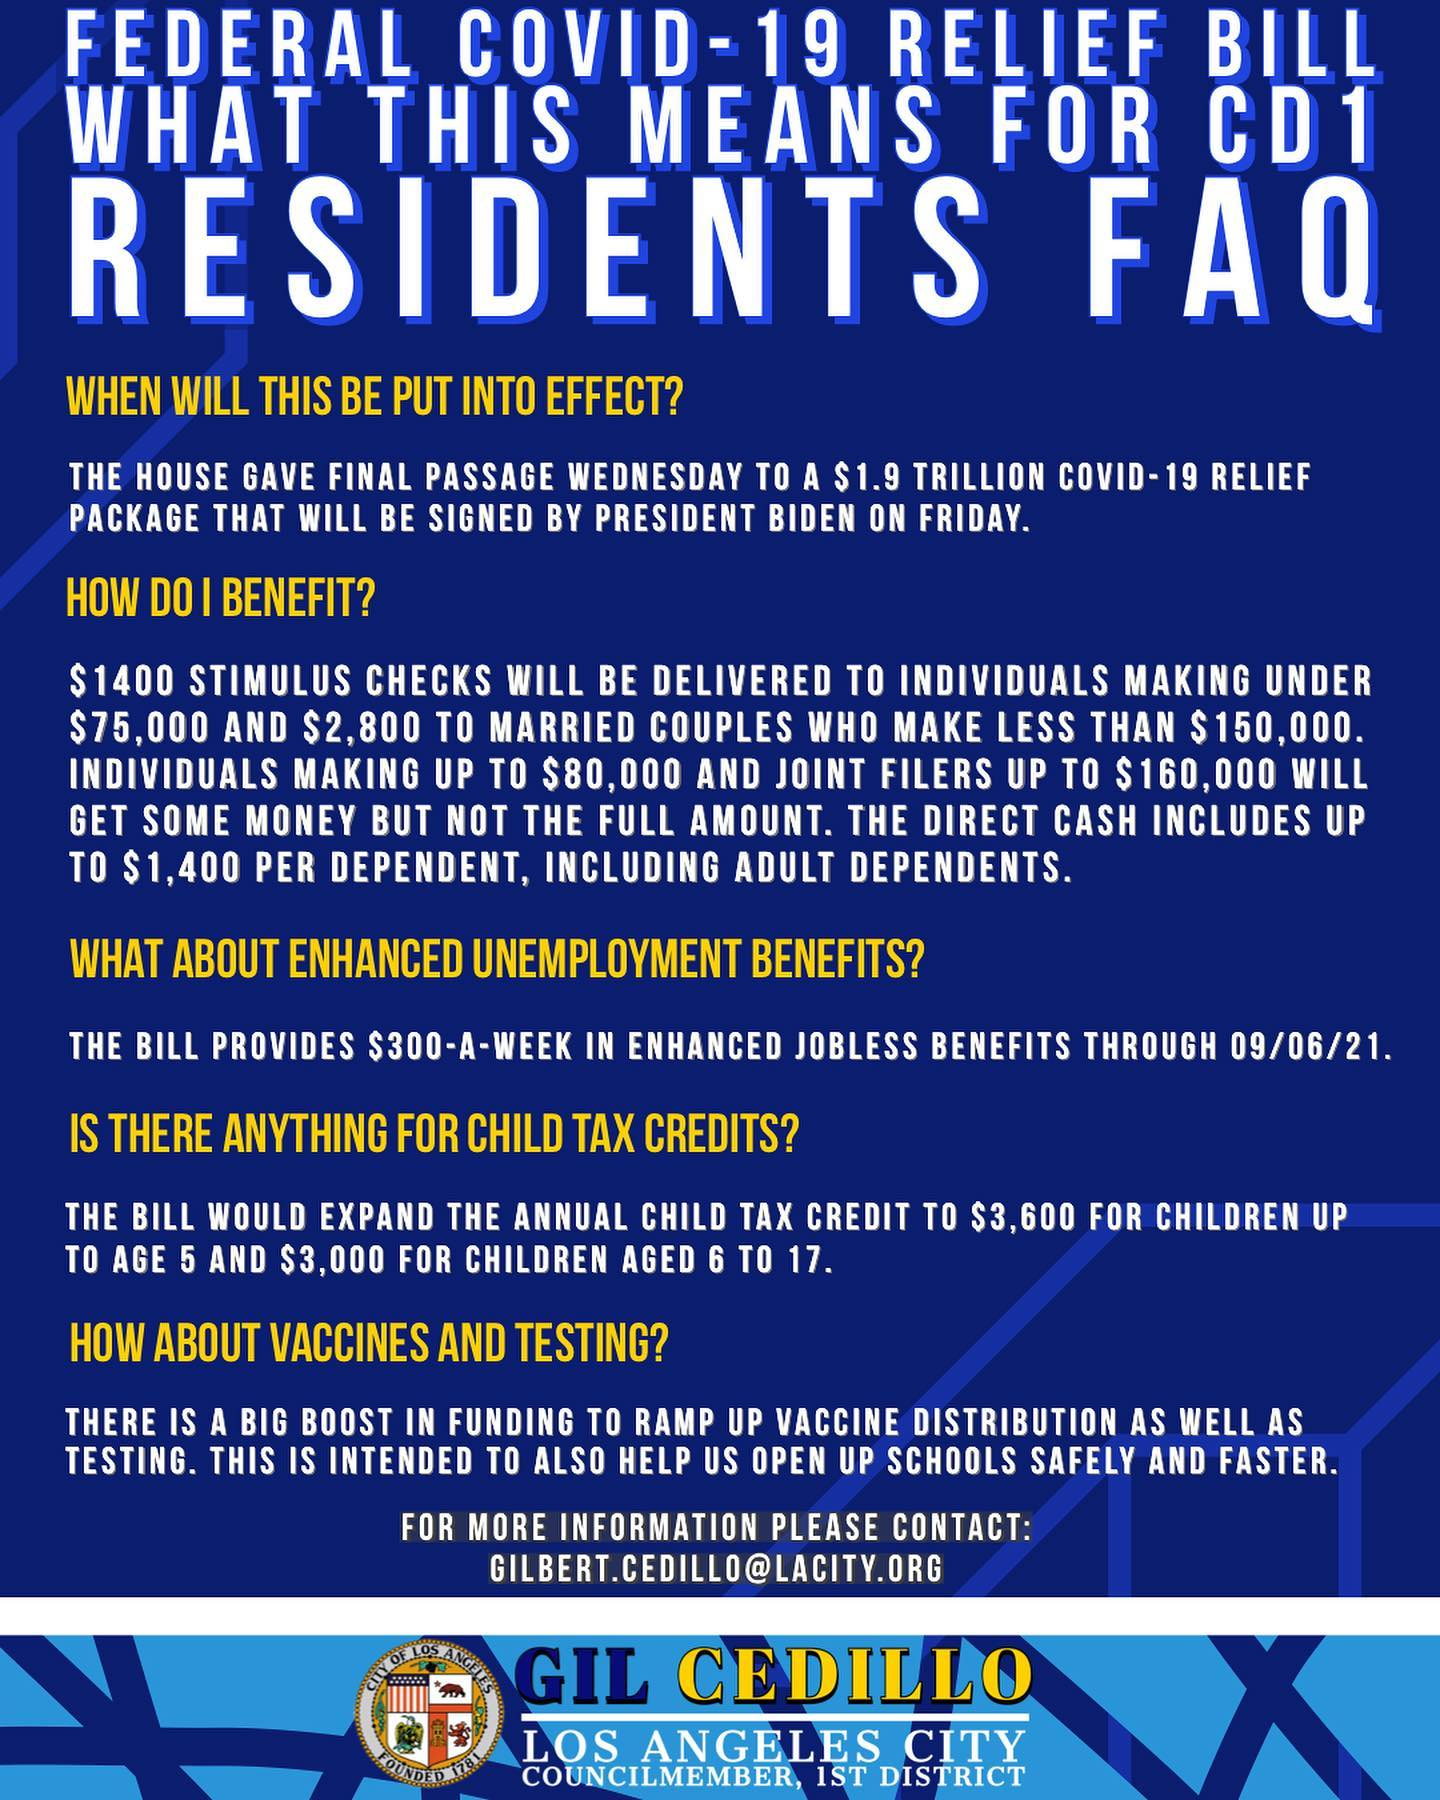 What COVID-19 Relief Bill Means for CD 1 Residents FAQ Page 2